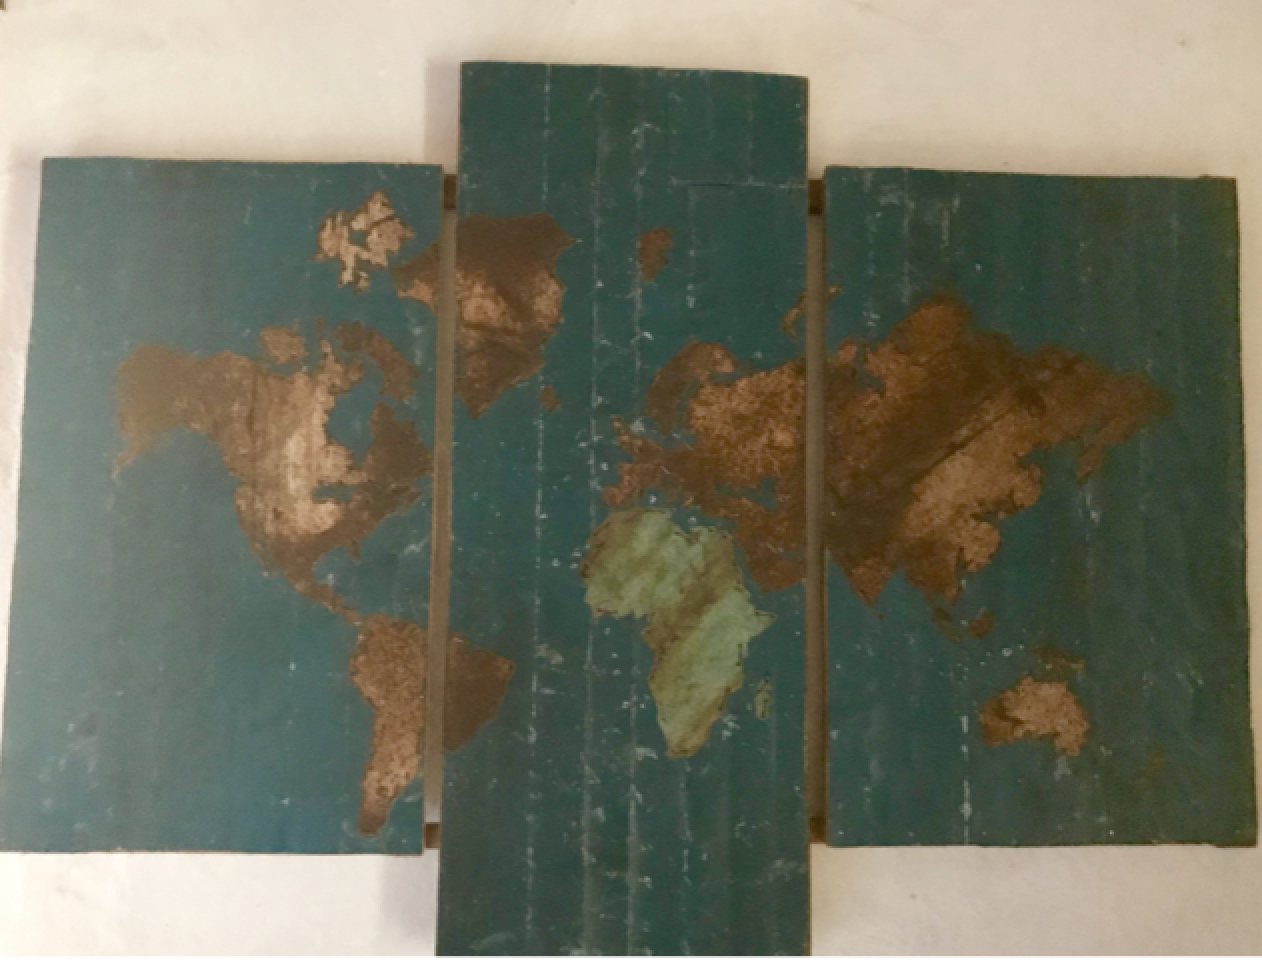 T3 Triple Tin Recycle art map of the world in a wooden frame(Large 65cm x 100cm) :  $200 (20,000Ksh)